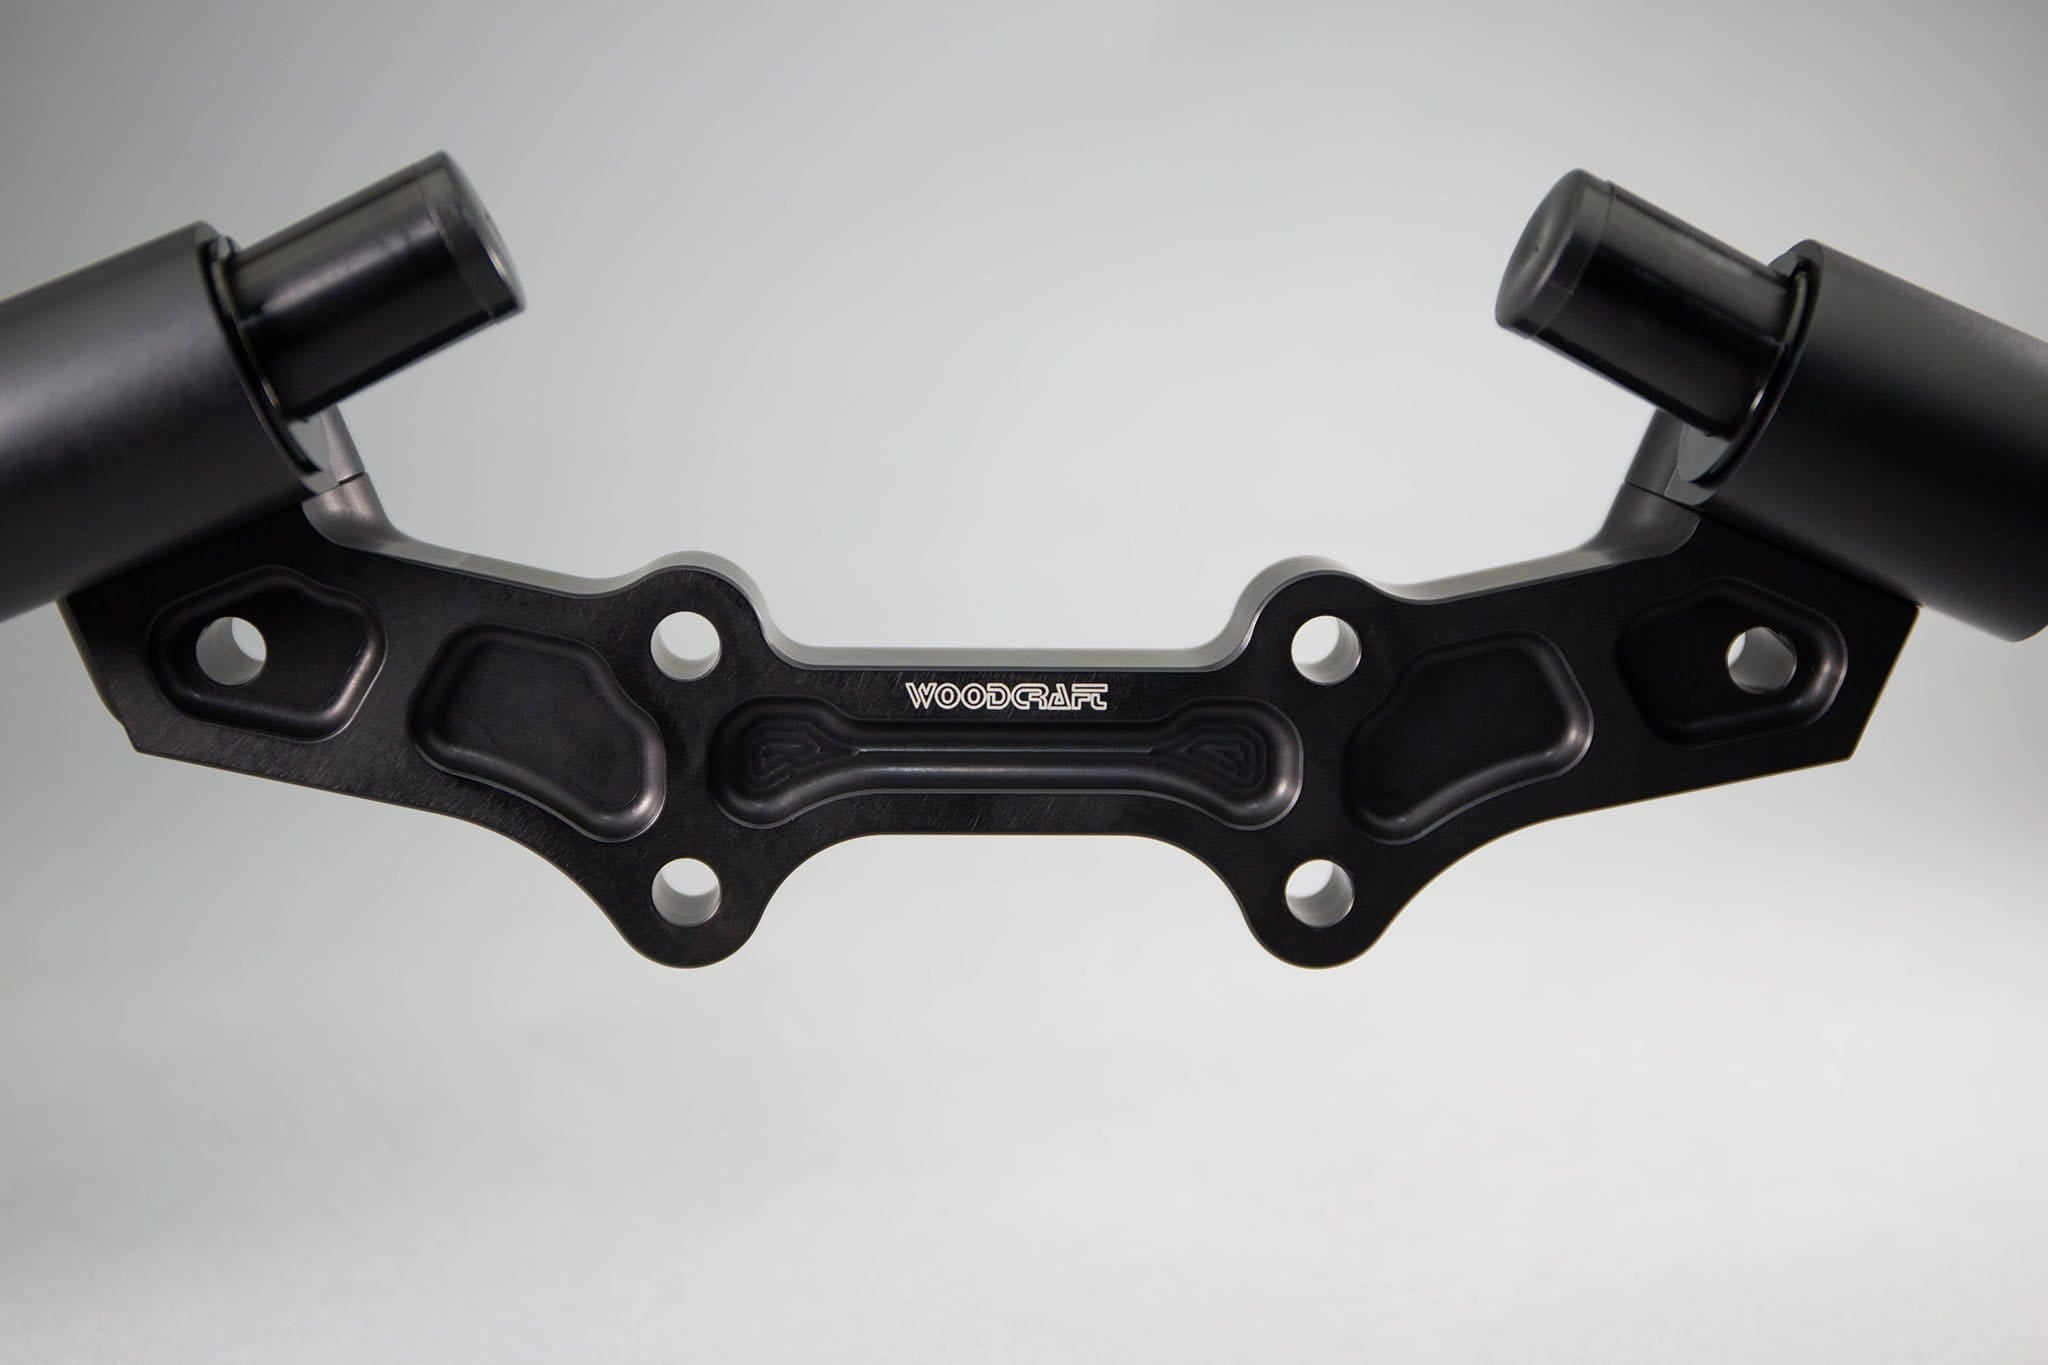 Yamaha FZ07 MT07 Front Mount 35mm Eccentric Adjustable Adapter Plate Assembly - Woodcraft Technologies - Motorcycle Parts